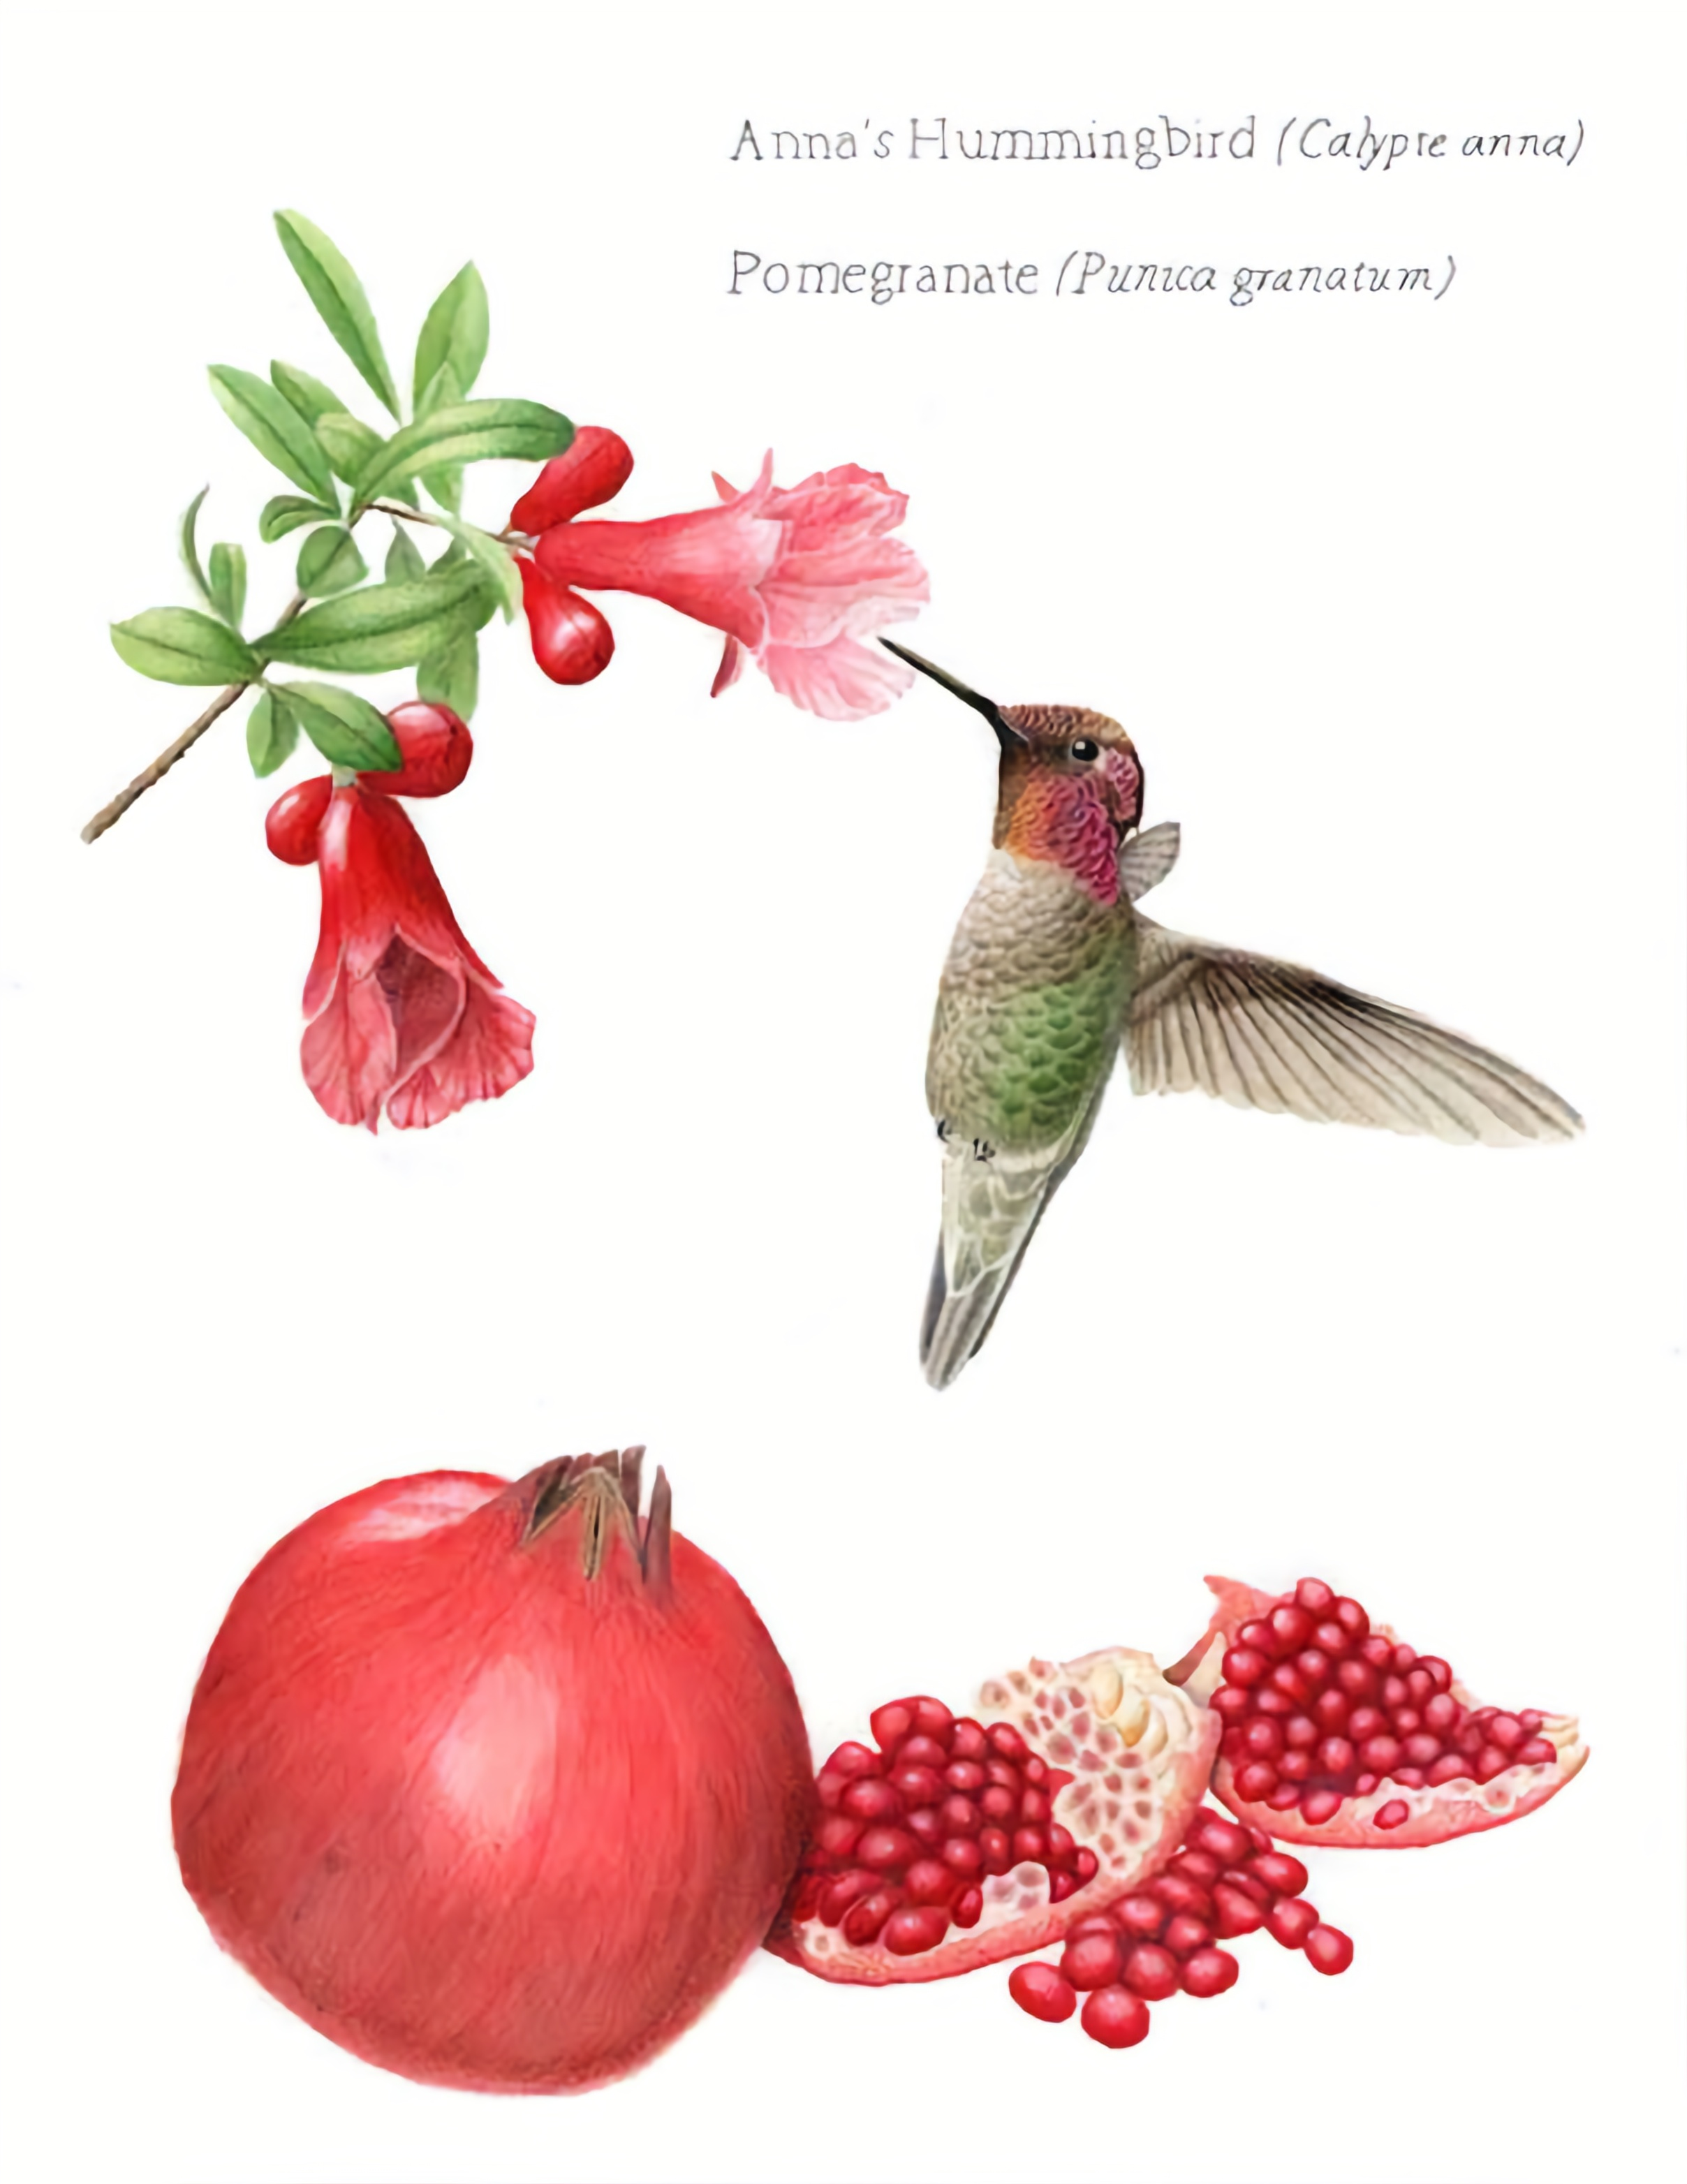 Pomegranate and Anna's Hummingbird illustration by Nora Sherwood